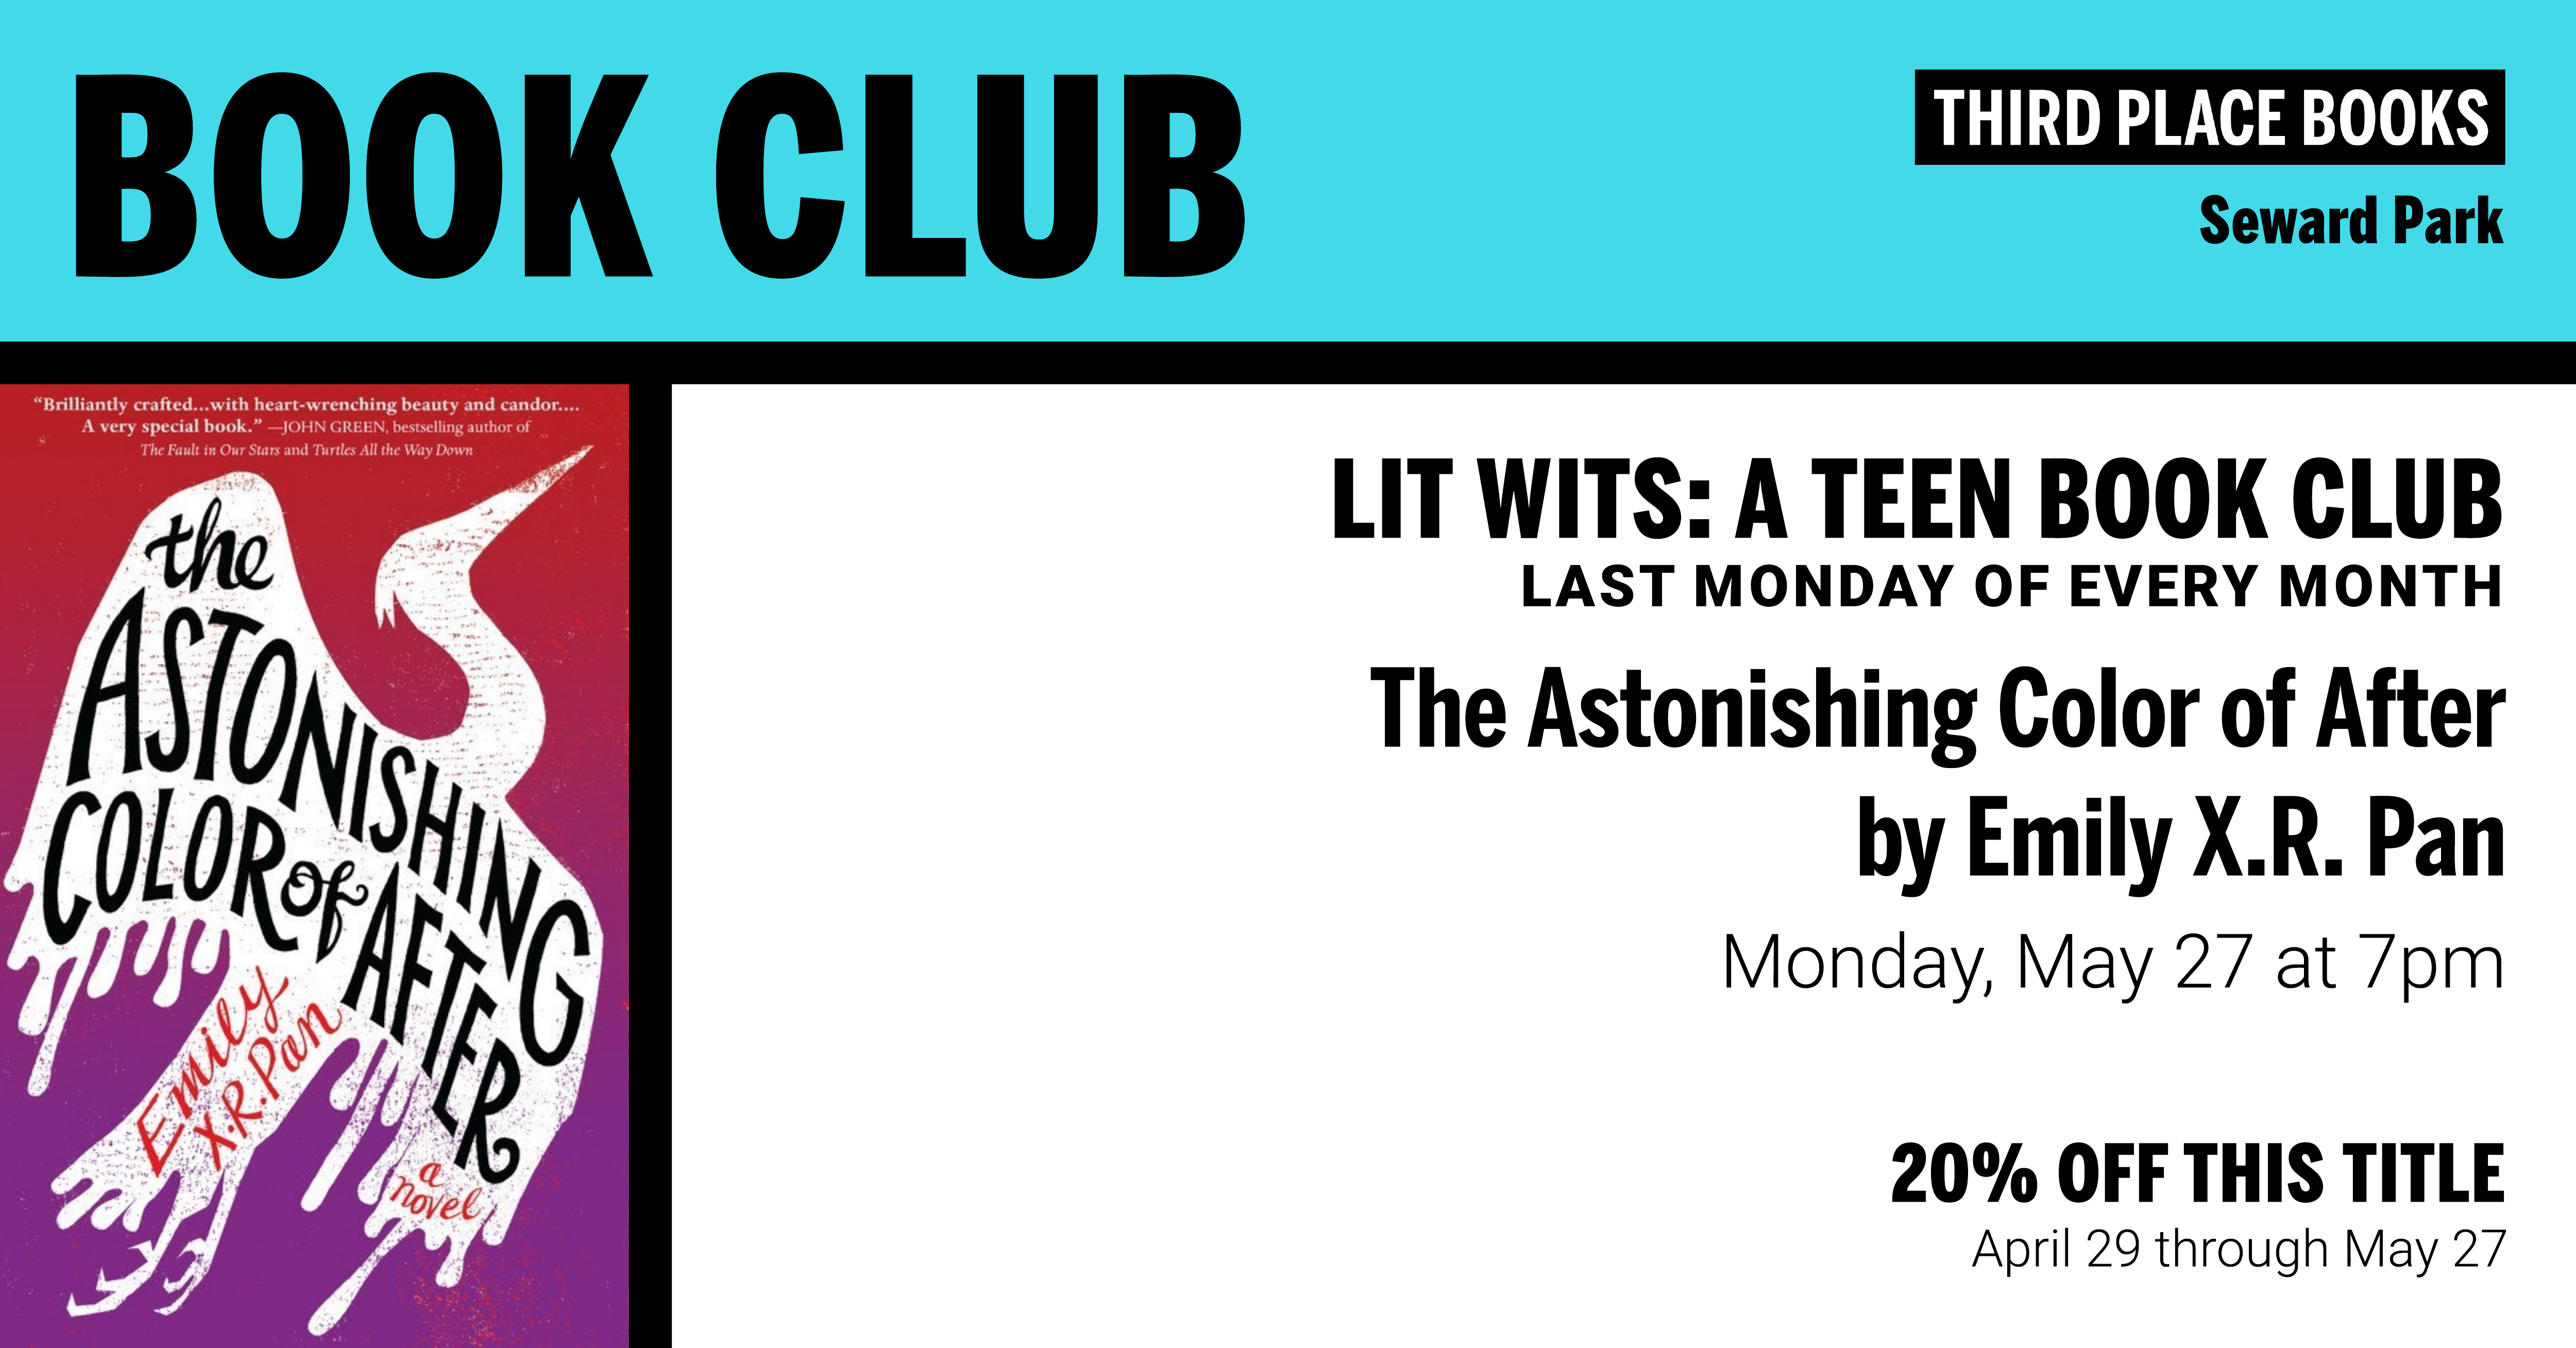 Lit Wits: A Teen Book Club discussing The Astonishing Color of After by Emily X R Pan on Monday, May 27 at 7pm